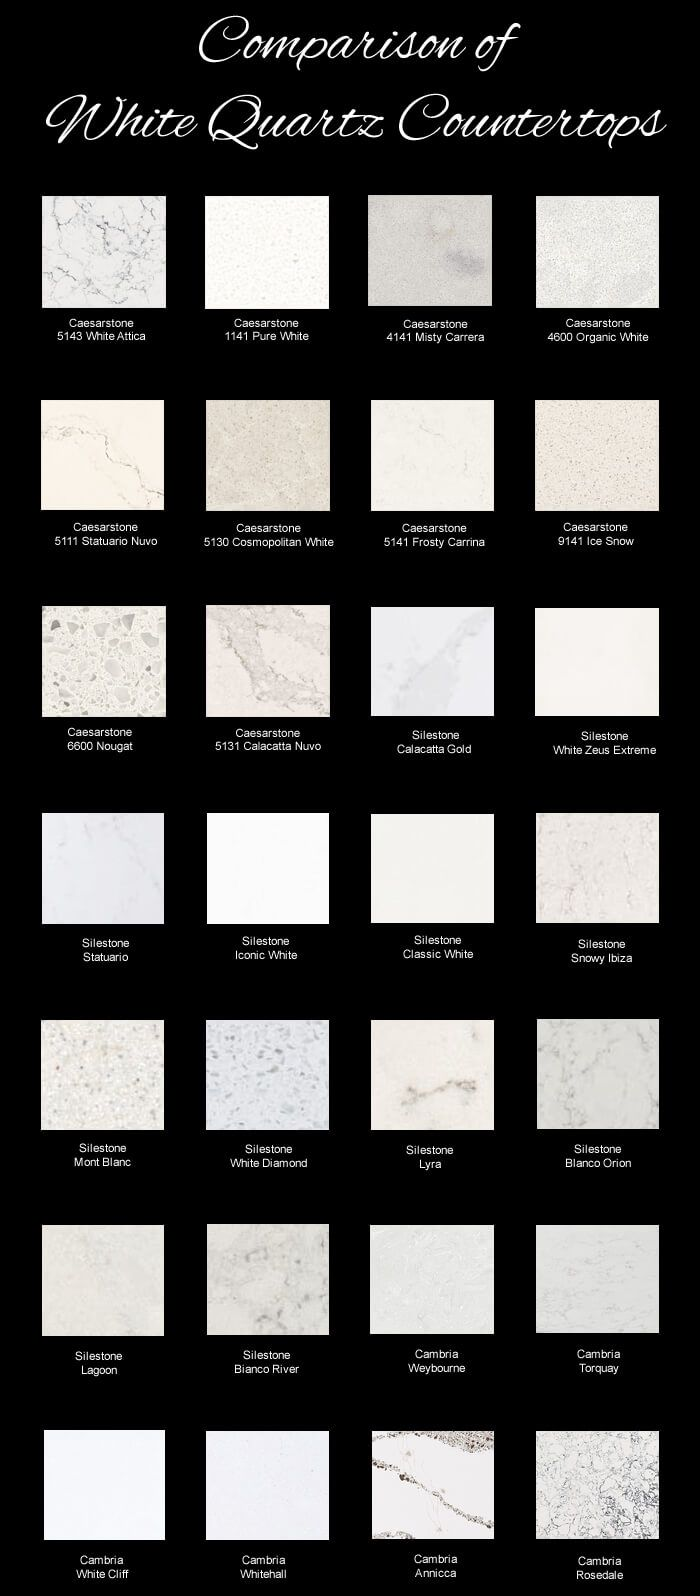 Comparison Of White Quartz Countertops From Different